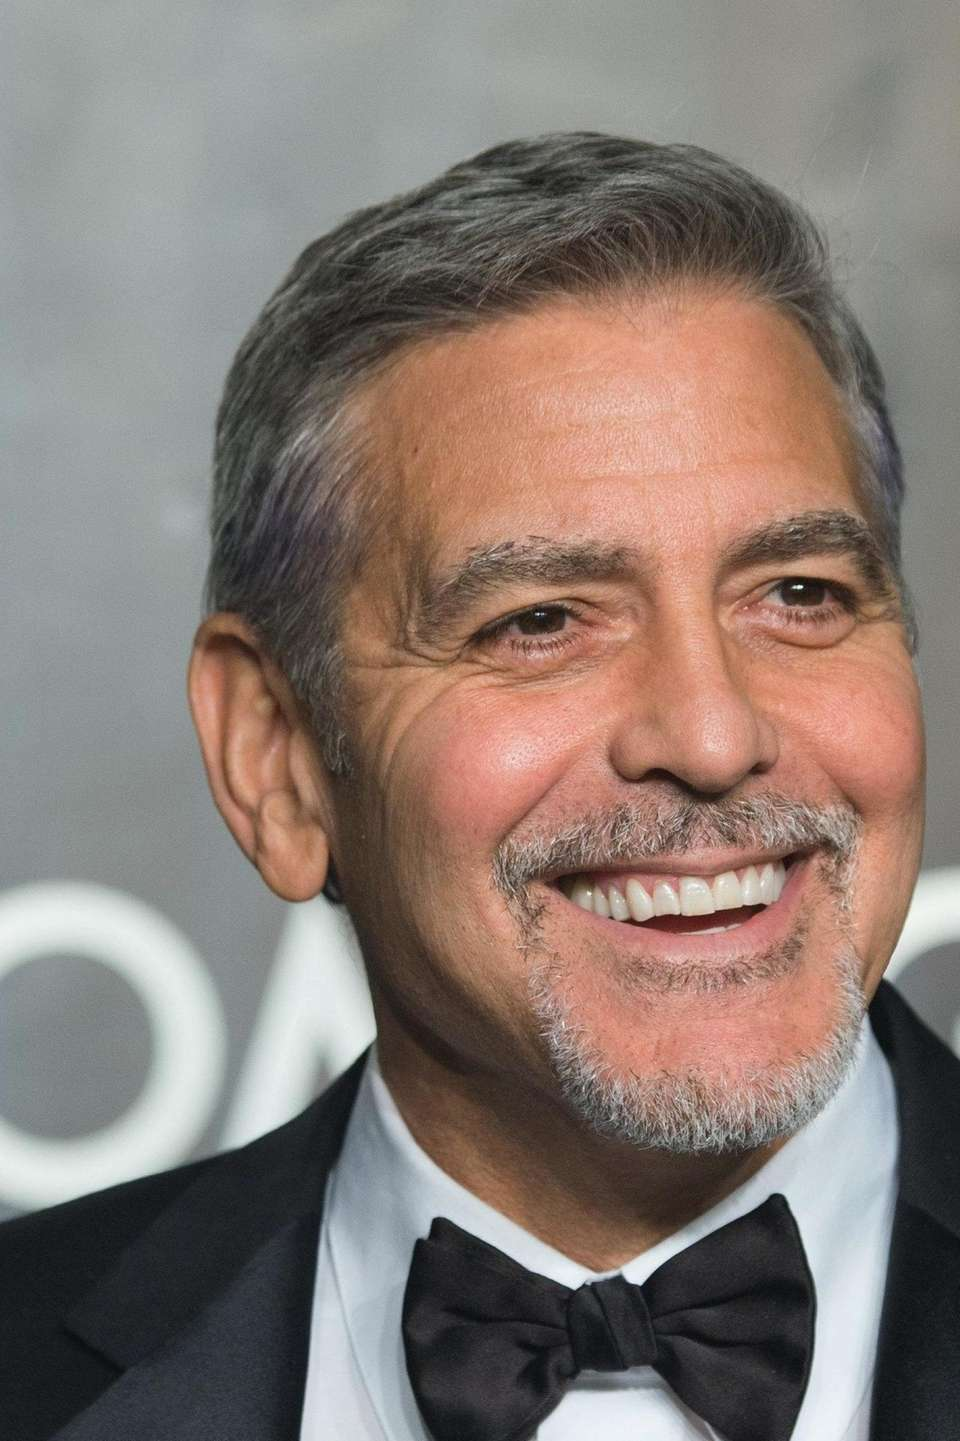 George Clooney welcomed twins Ella and Alexander, with